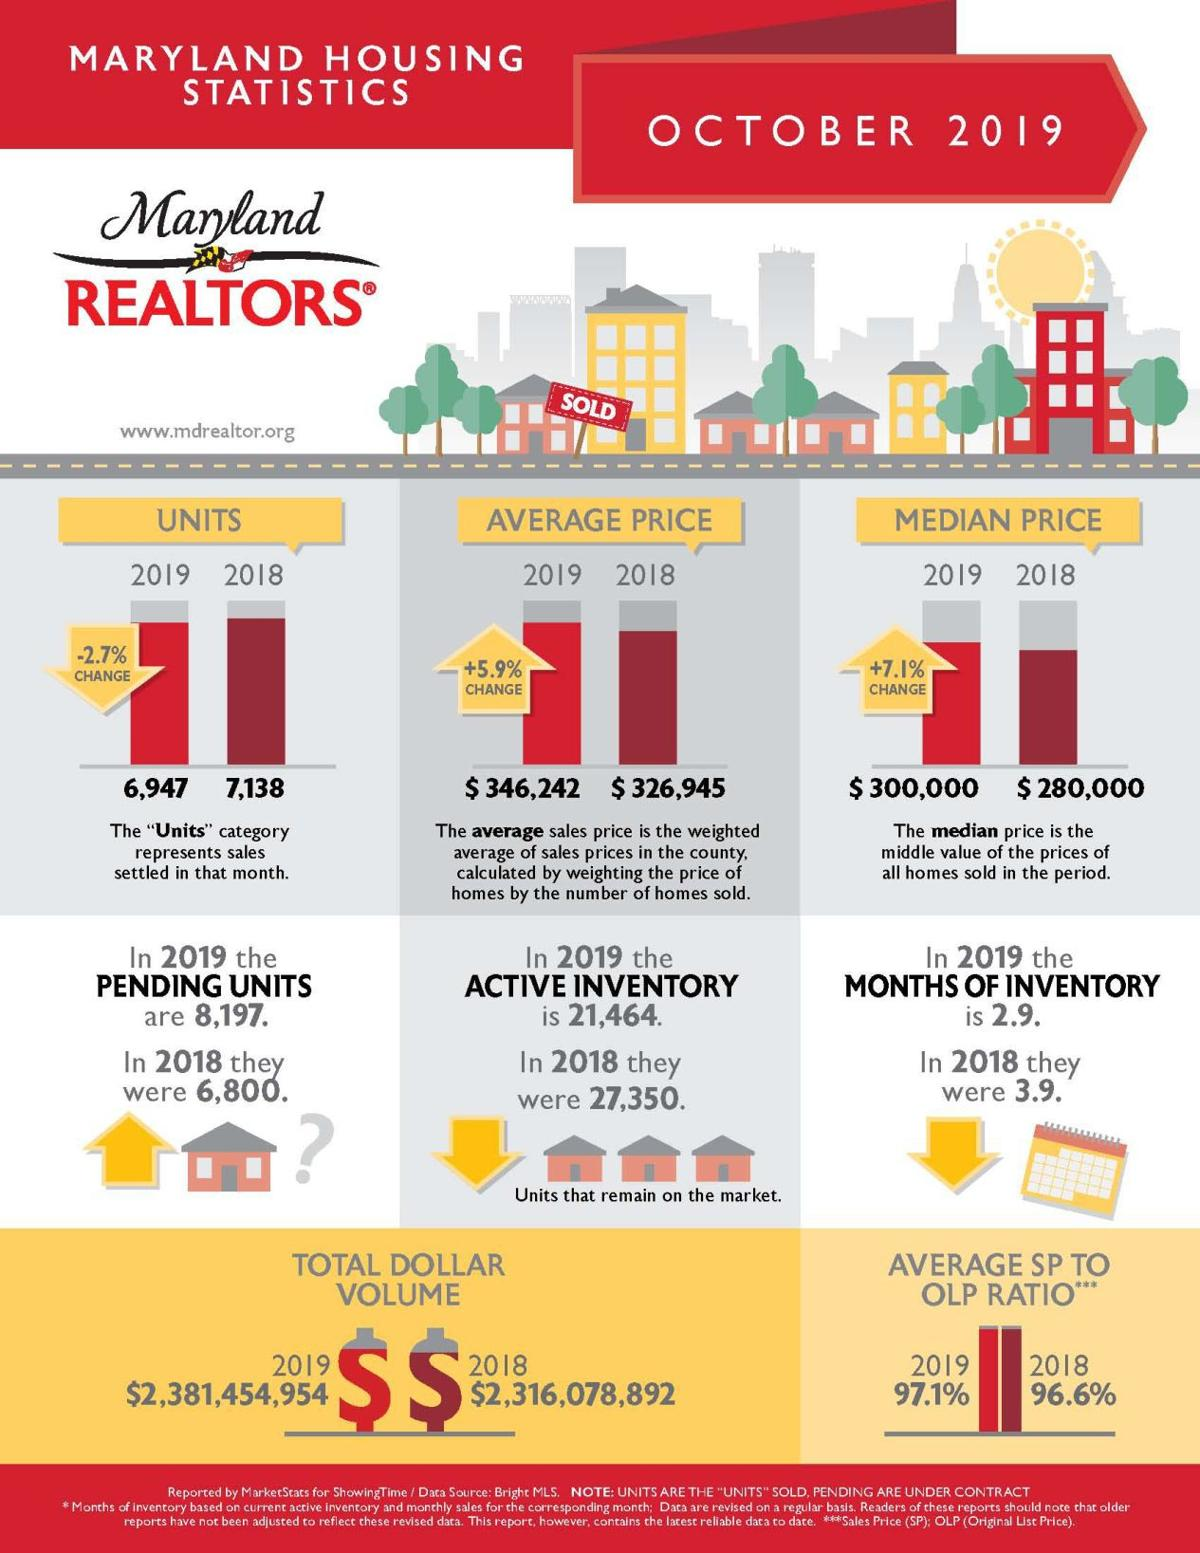 Maryland housing market remains stable